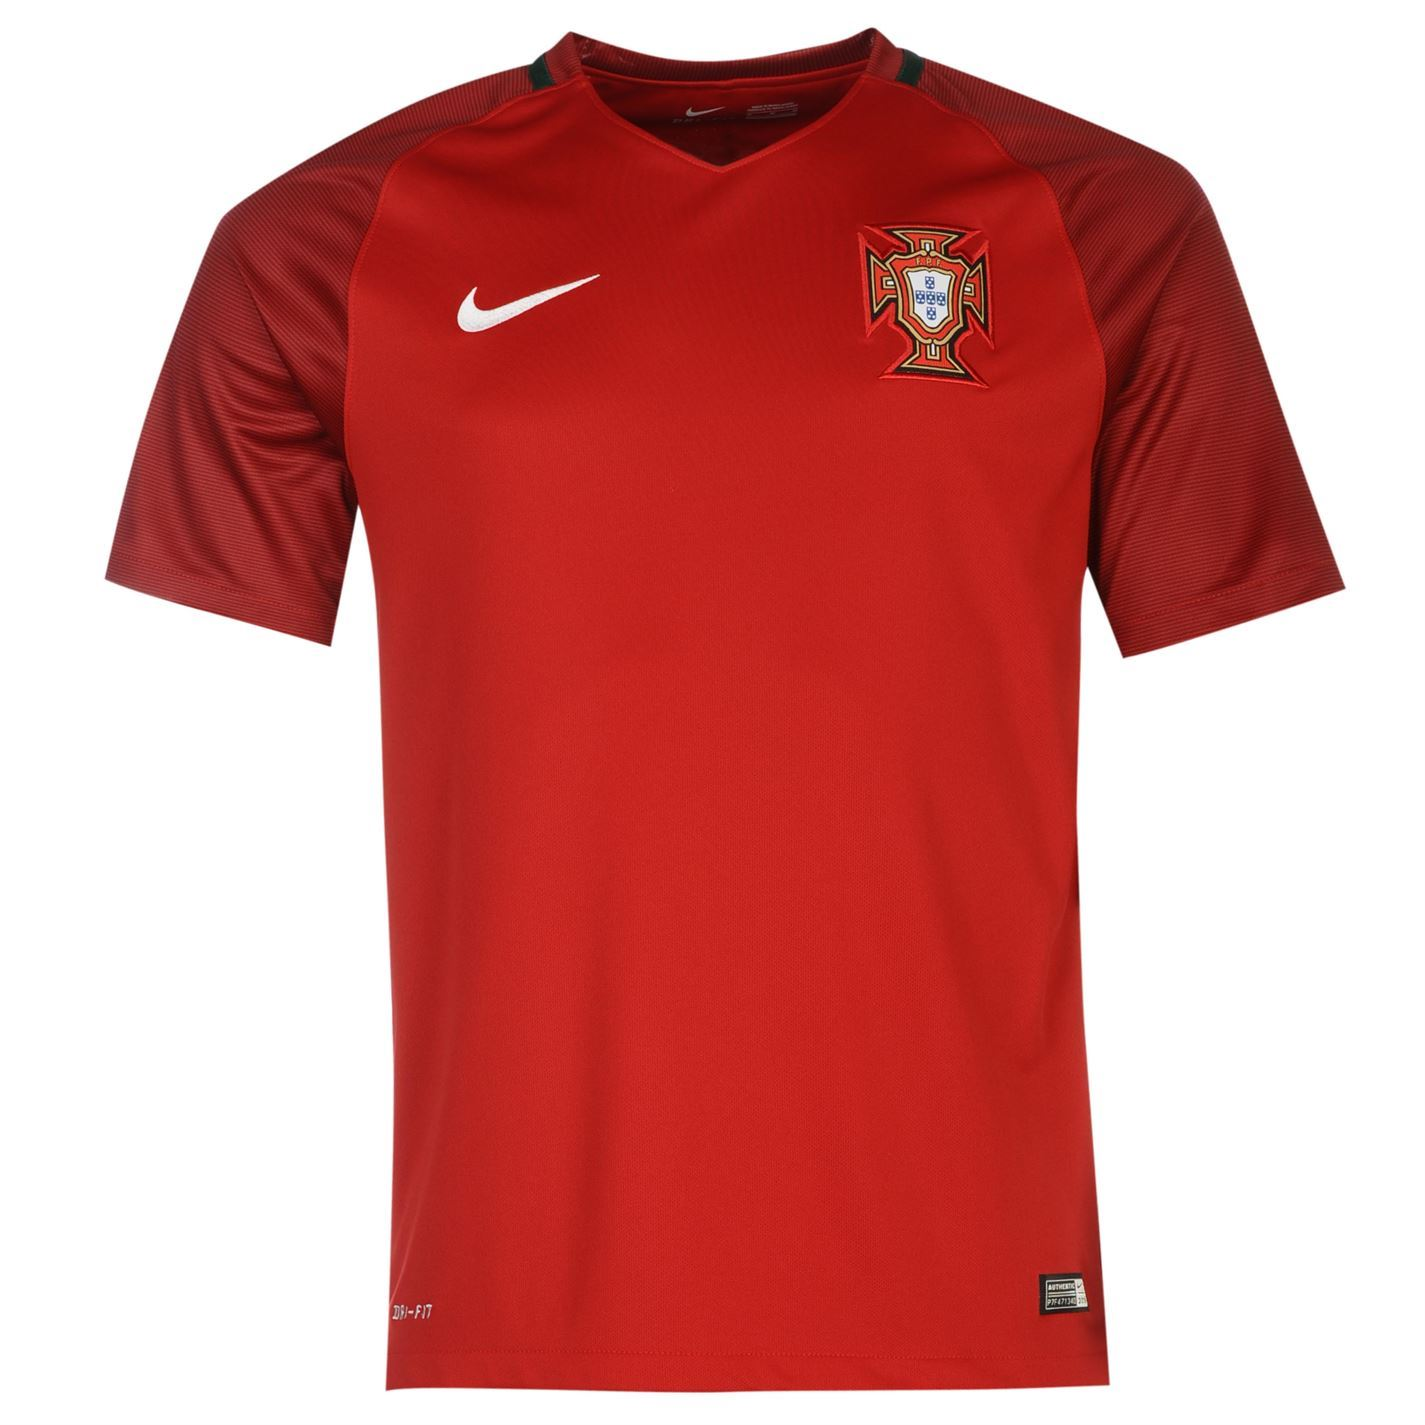 nike portugal home jersey 2016 mens red football soccer shirt top ebay. Black Bedroom Furniture Sets. Home Design Ideas